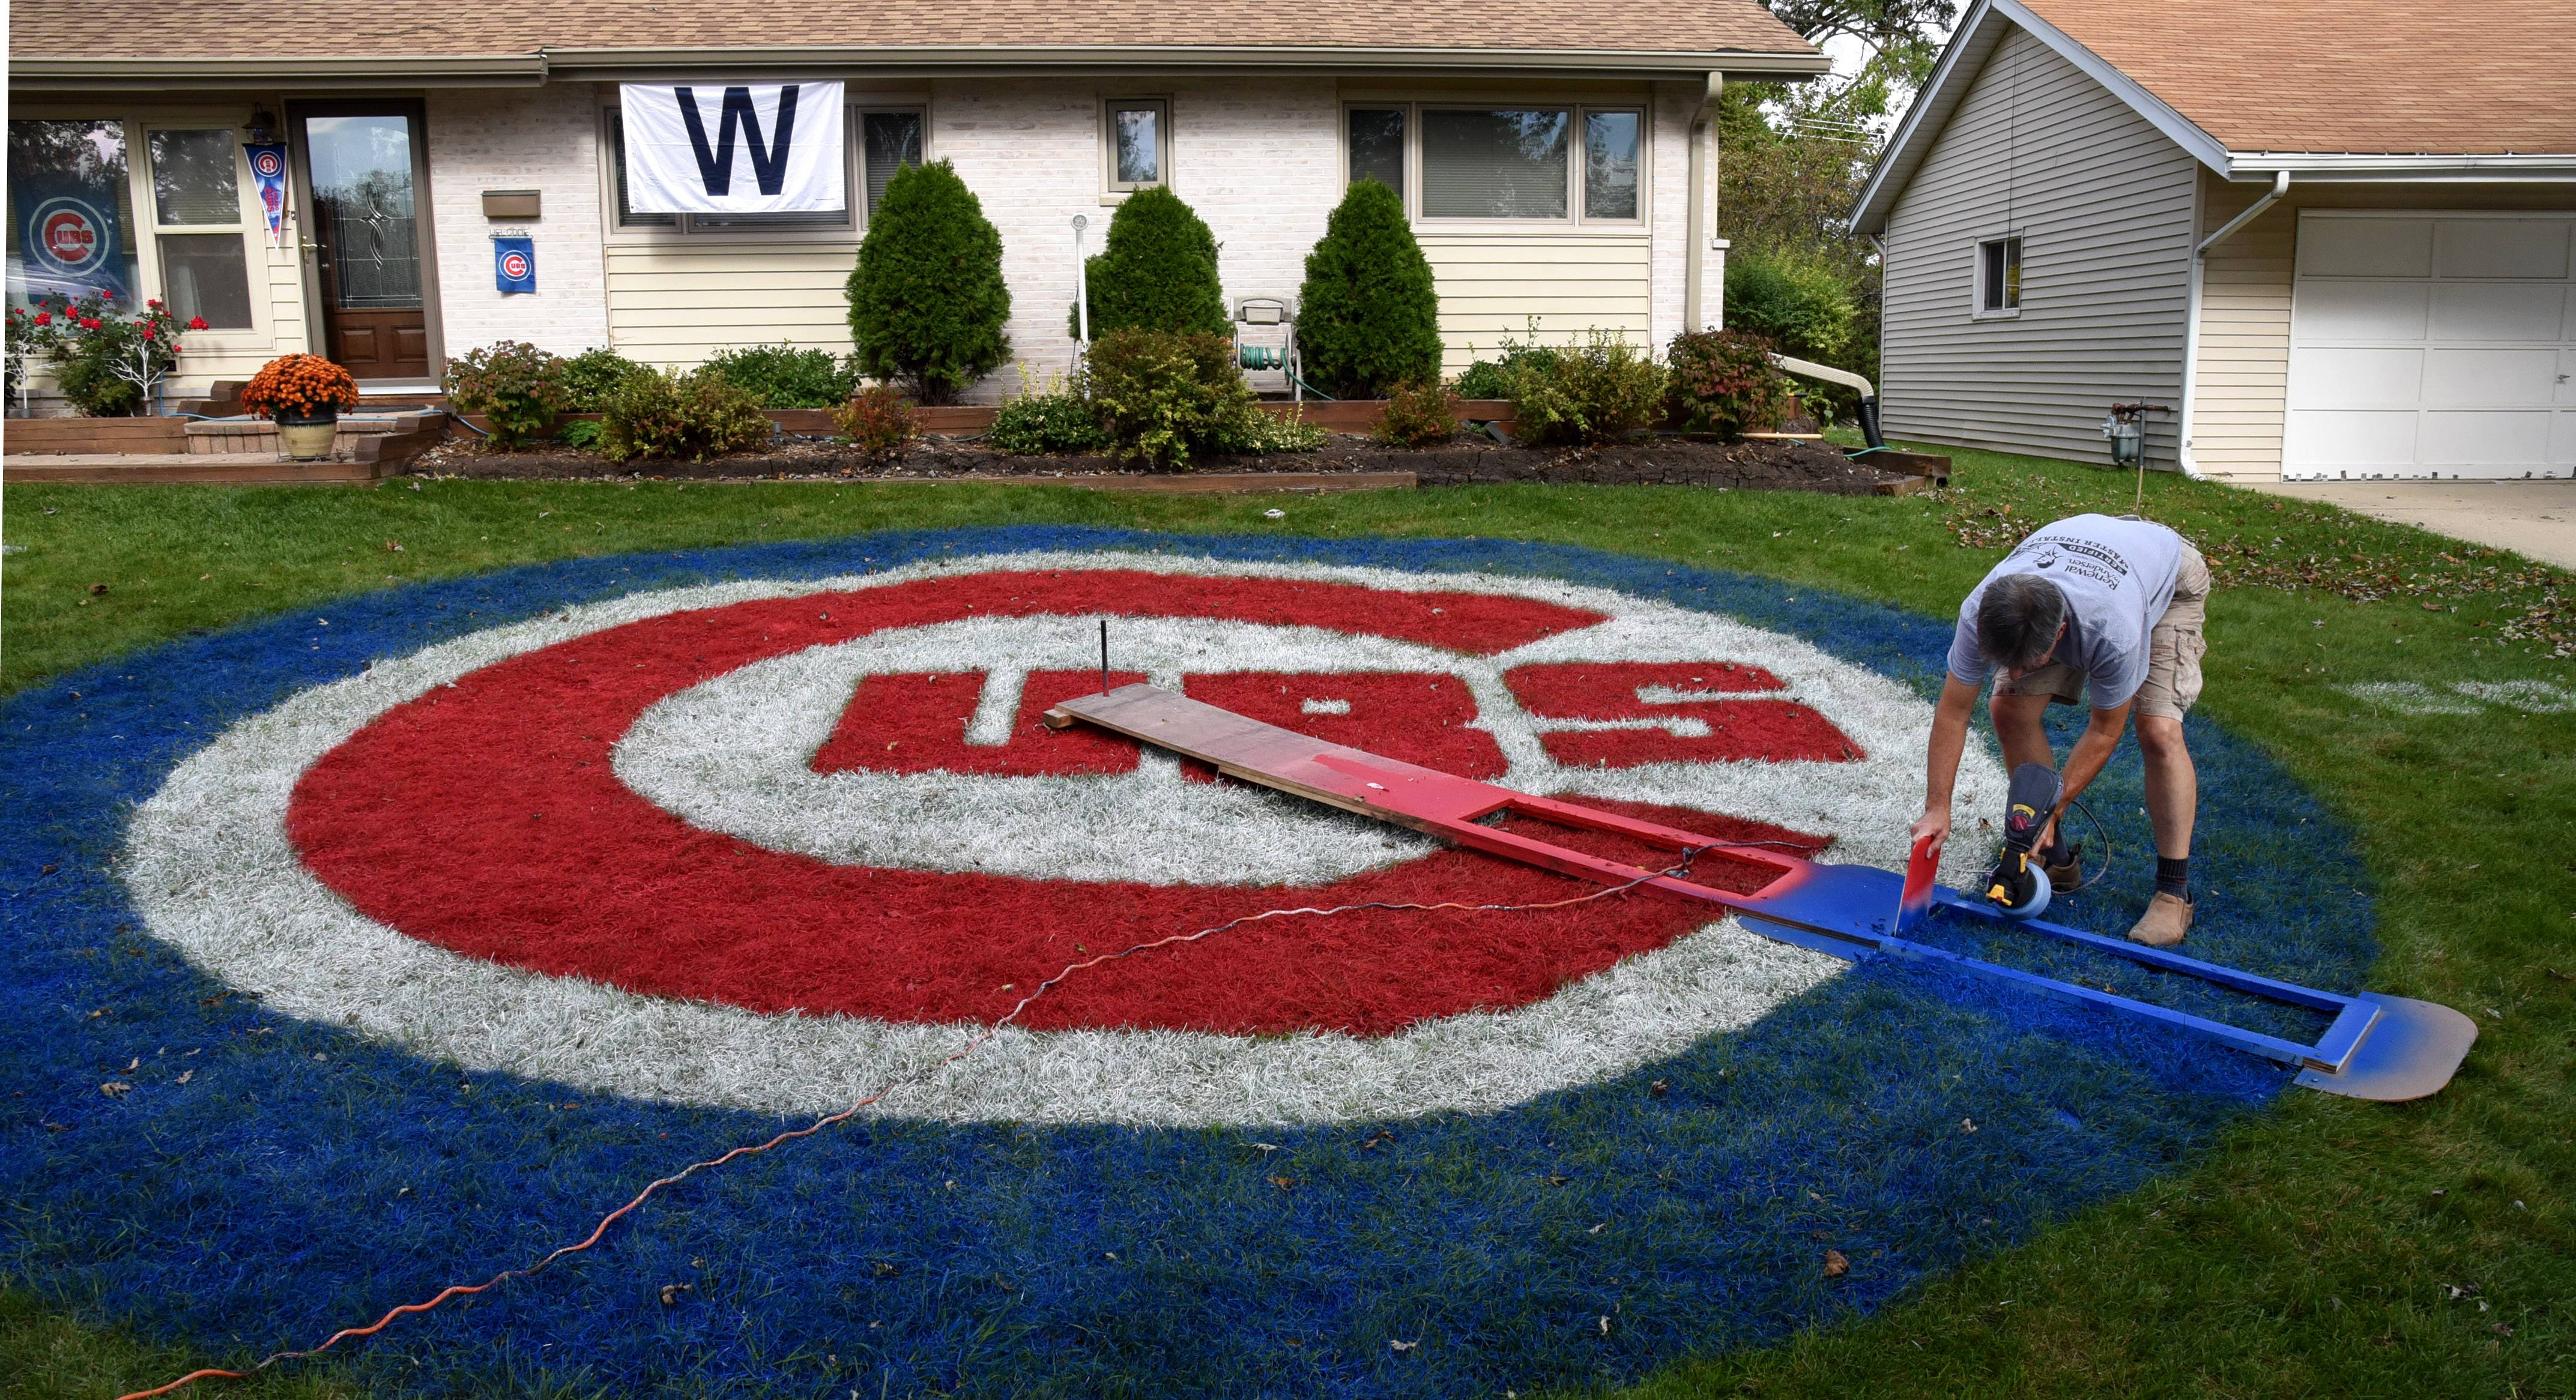 Jim McNamara of Hoffman Estates is showing his support for the Cubs with a 27-foot-diameter team logo he's painted on his front lawn. From the reactions he's getting from passing drivers, it's easy to tell who's a Cubs fan and who's a White Sox fan.